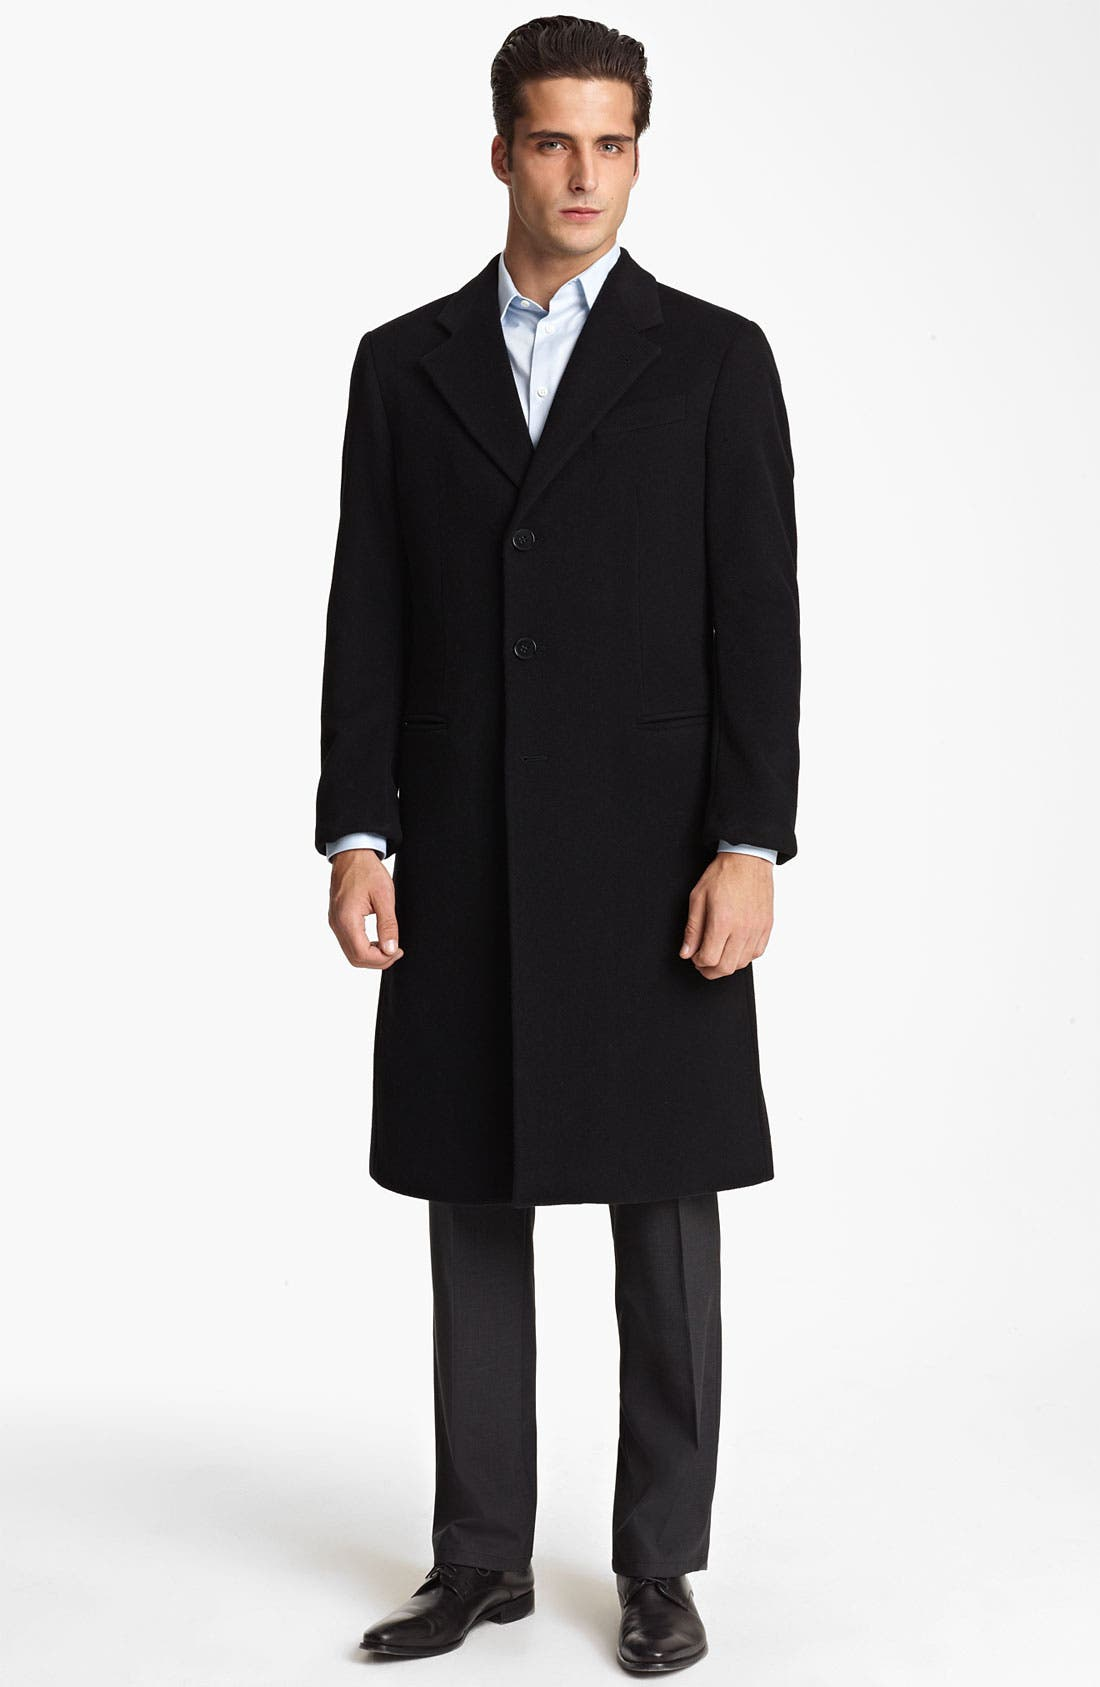 Alternate Image 1 Selected - Armani Collezioni 'Executive' Topcoat